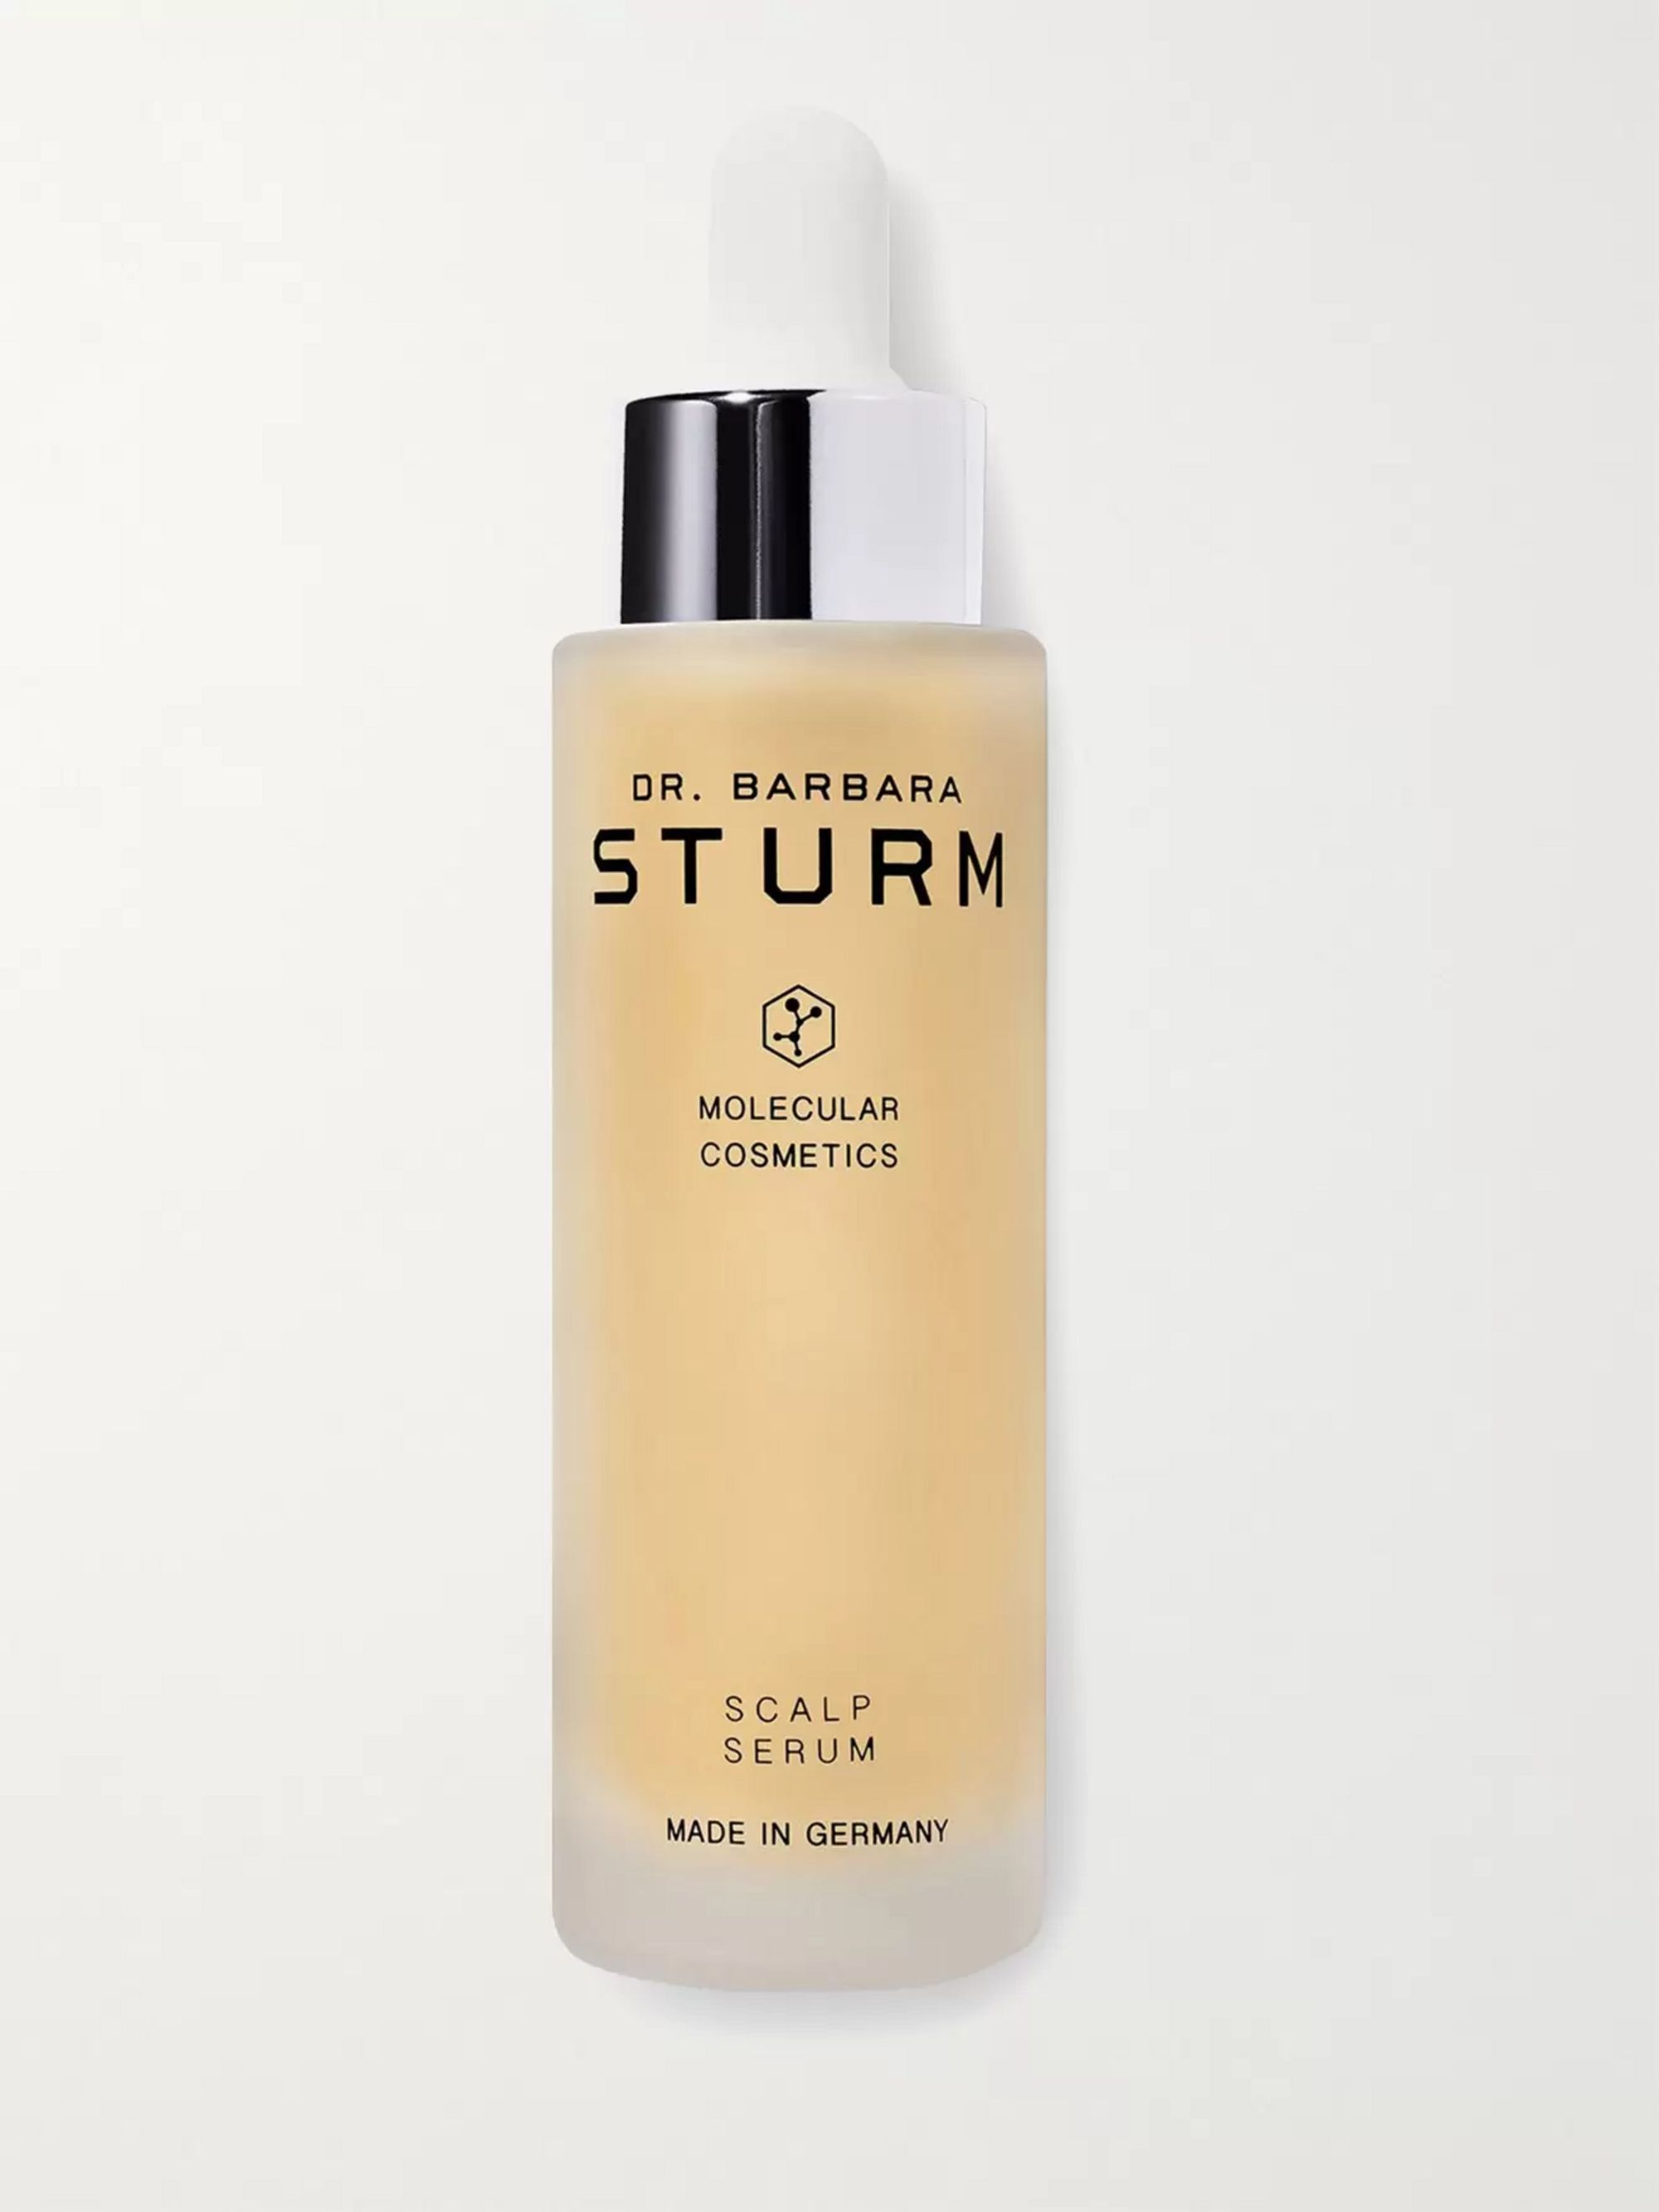 Dr. Barbara Sturm Scalp Serum, 50ml